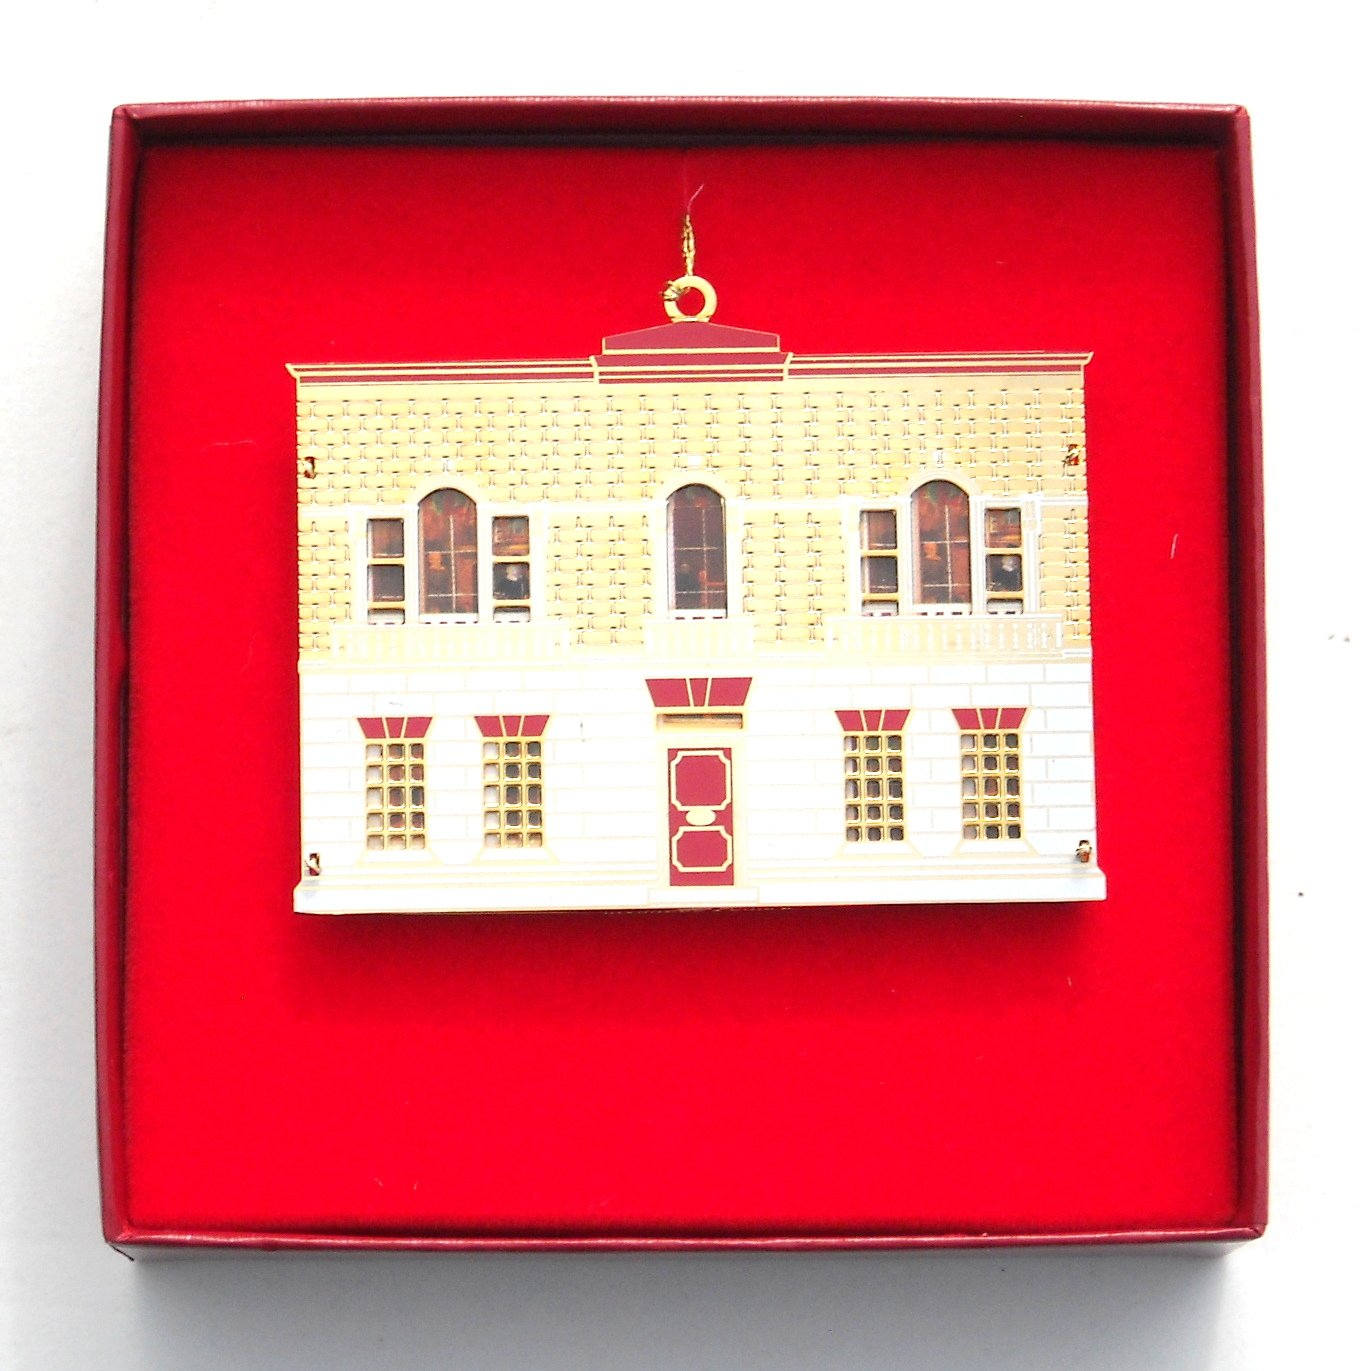 Palladian Doll House Collection Bing & Grondahl 24k Gold Finish Christmas ornament